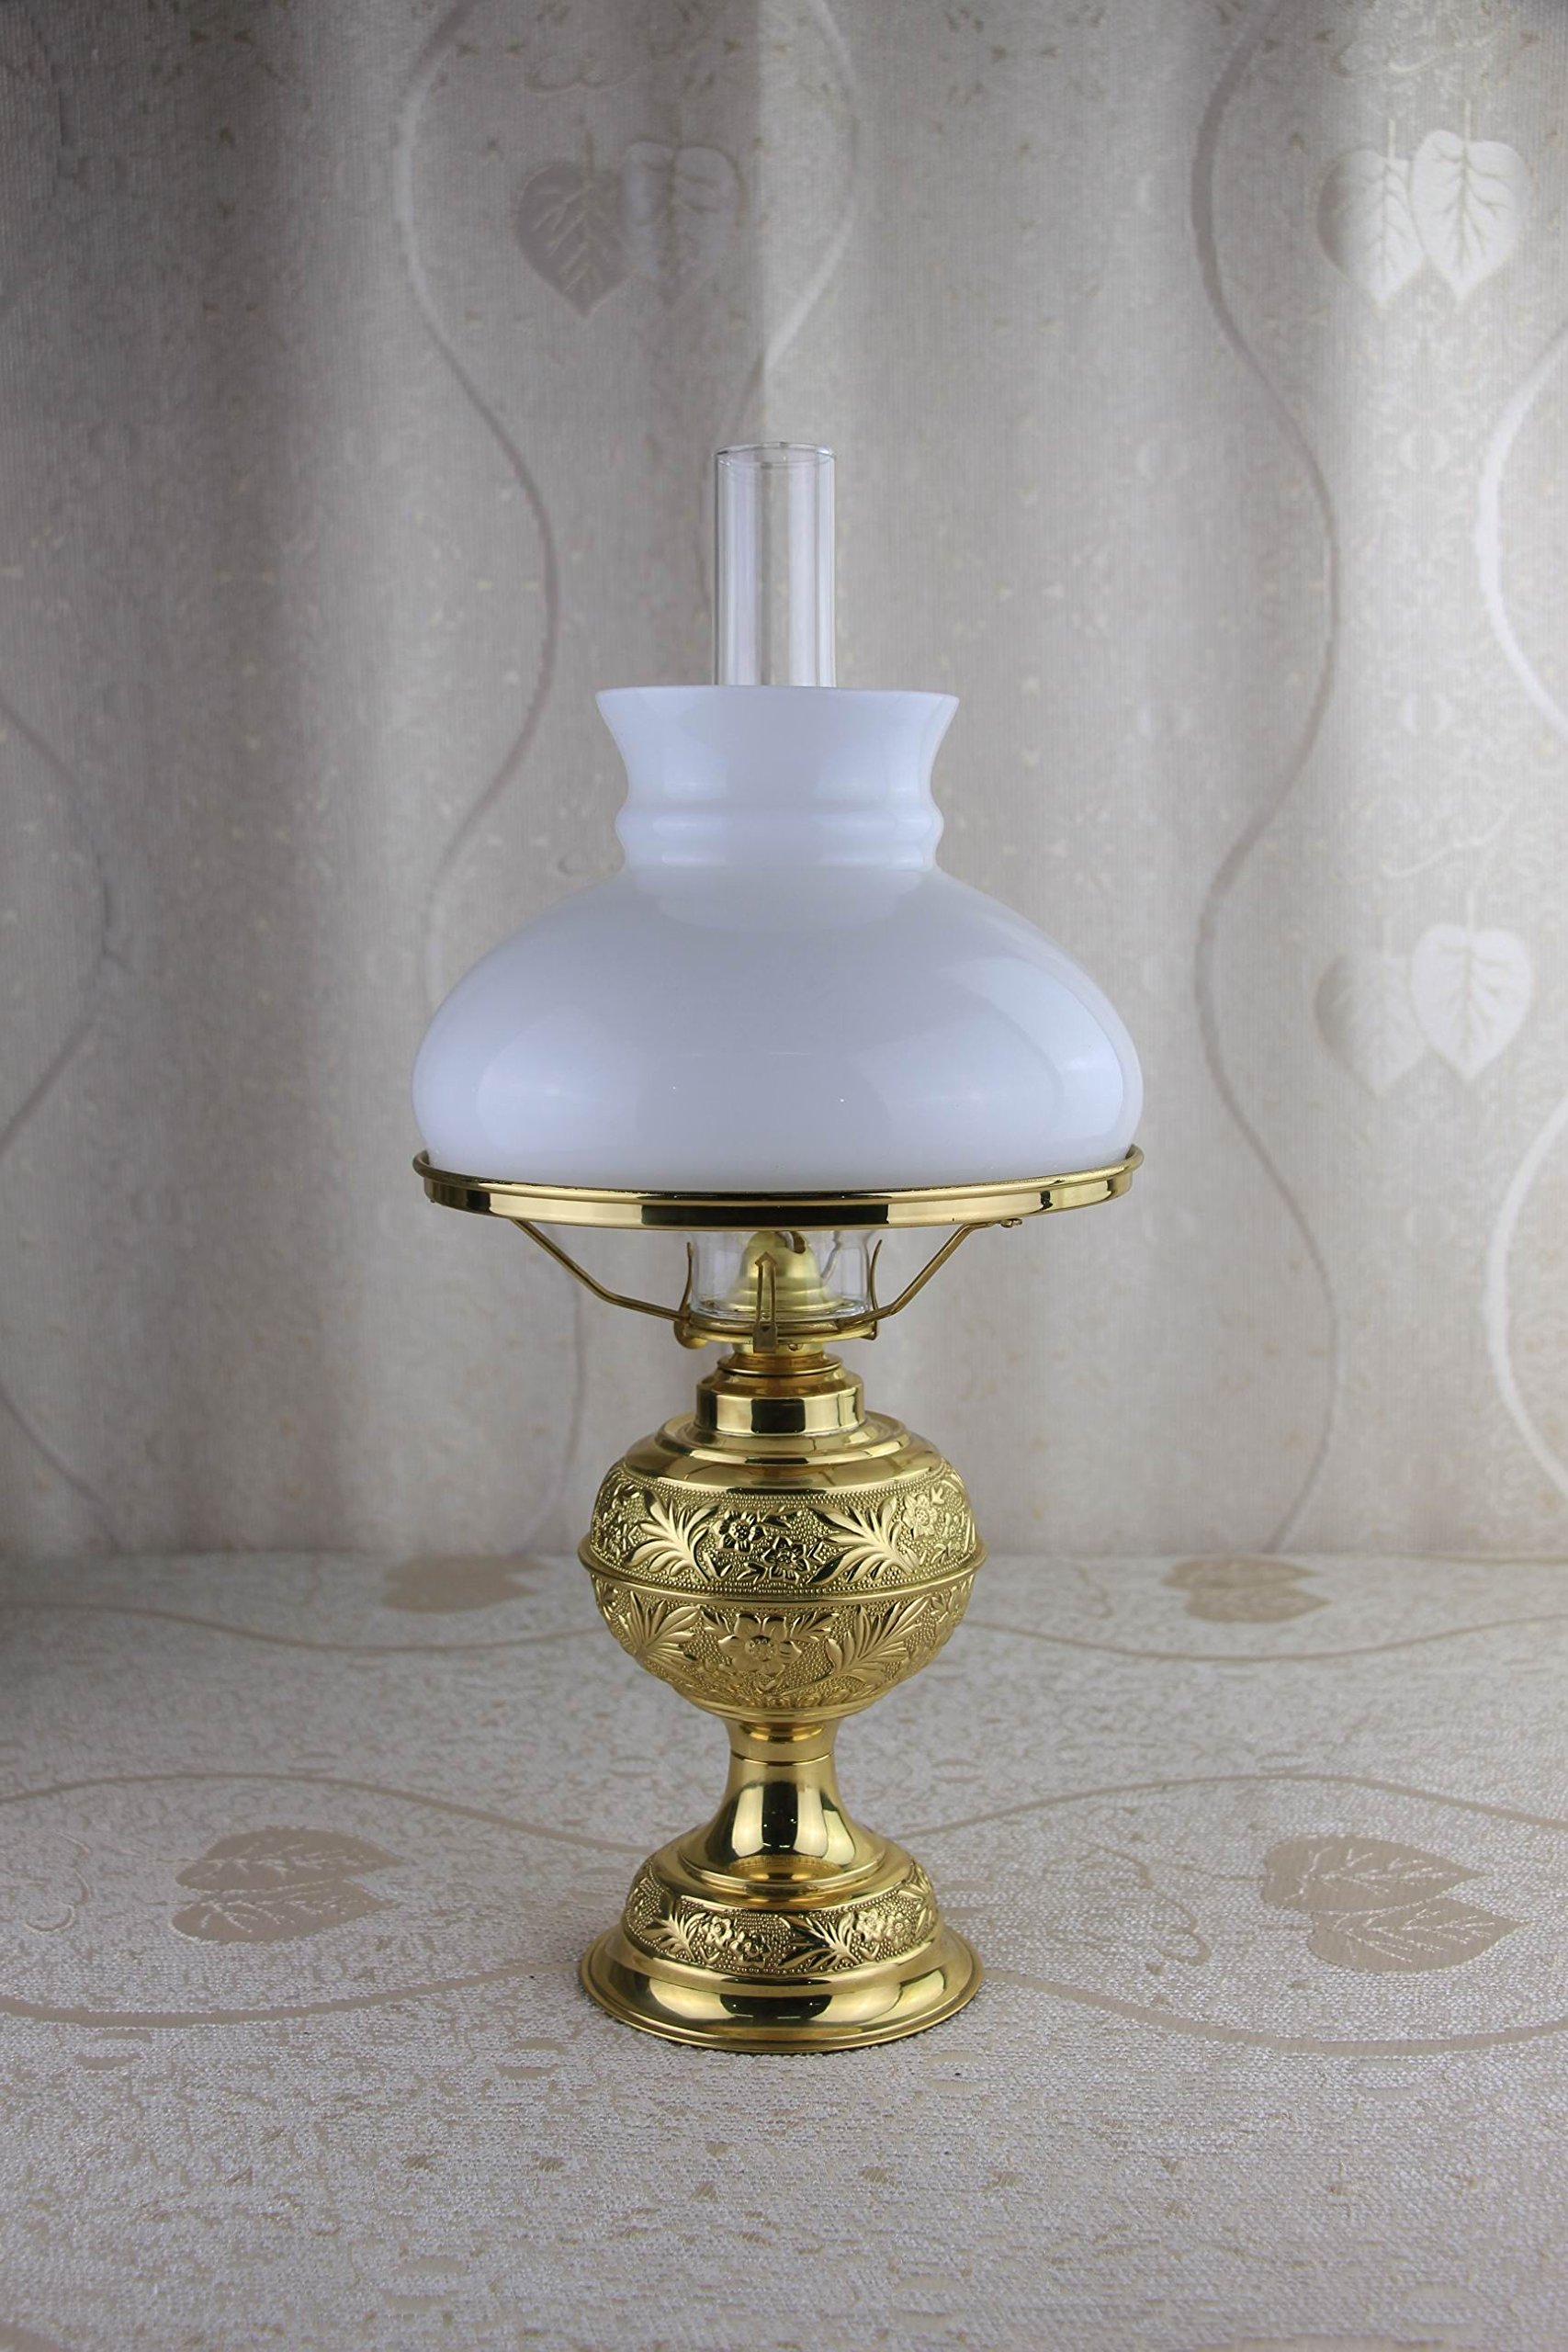 Generic Antique Brass-glass Oil Lamp Lighting Lamp Lantern Paraffin Lamp Collection #130. Our company have 32 kinds of oil lamp for your choice.